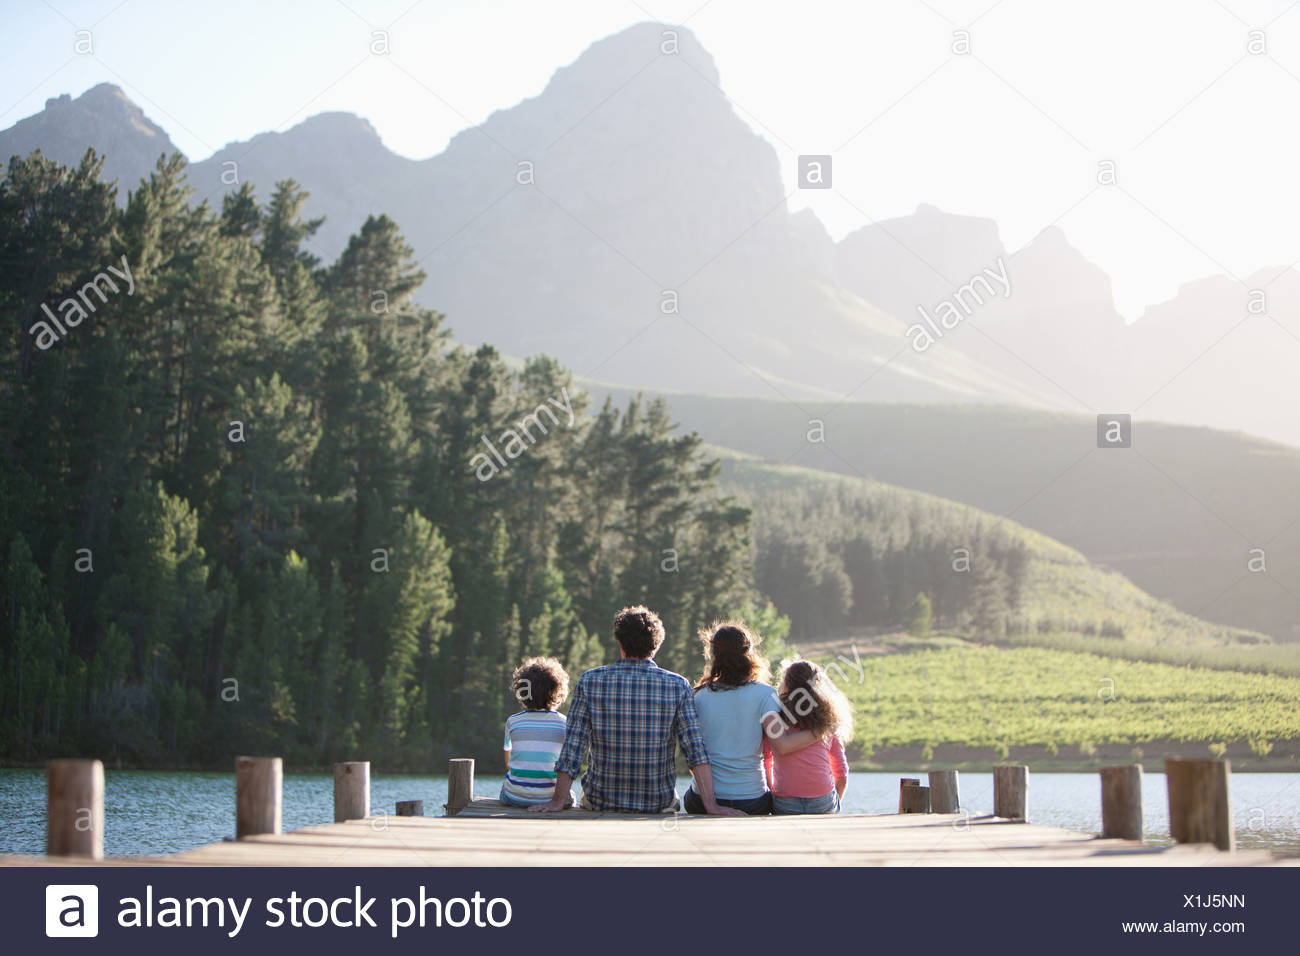 Family sitting on lake dock Photo Stock